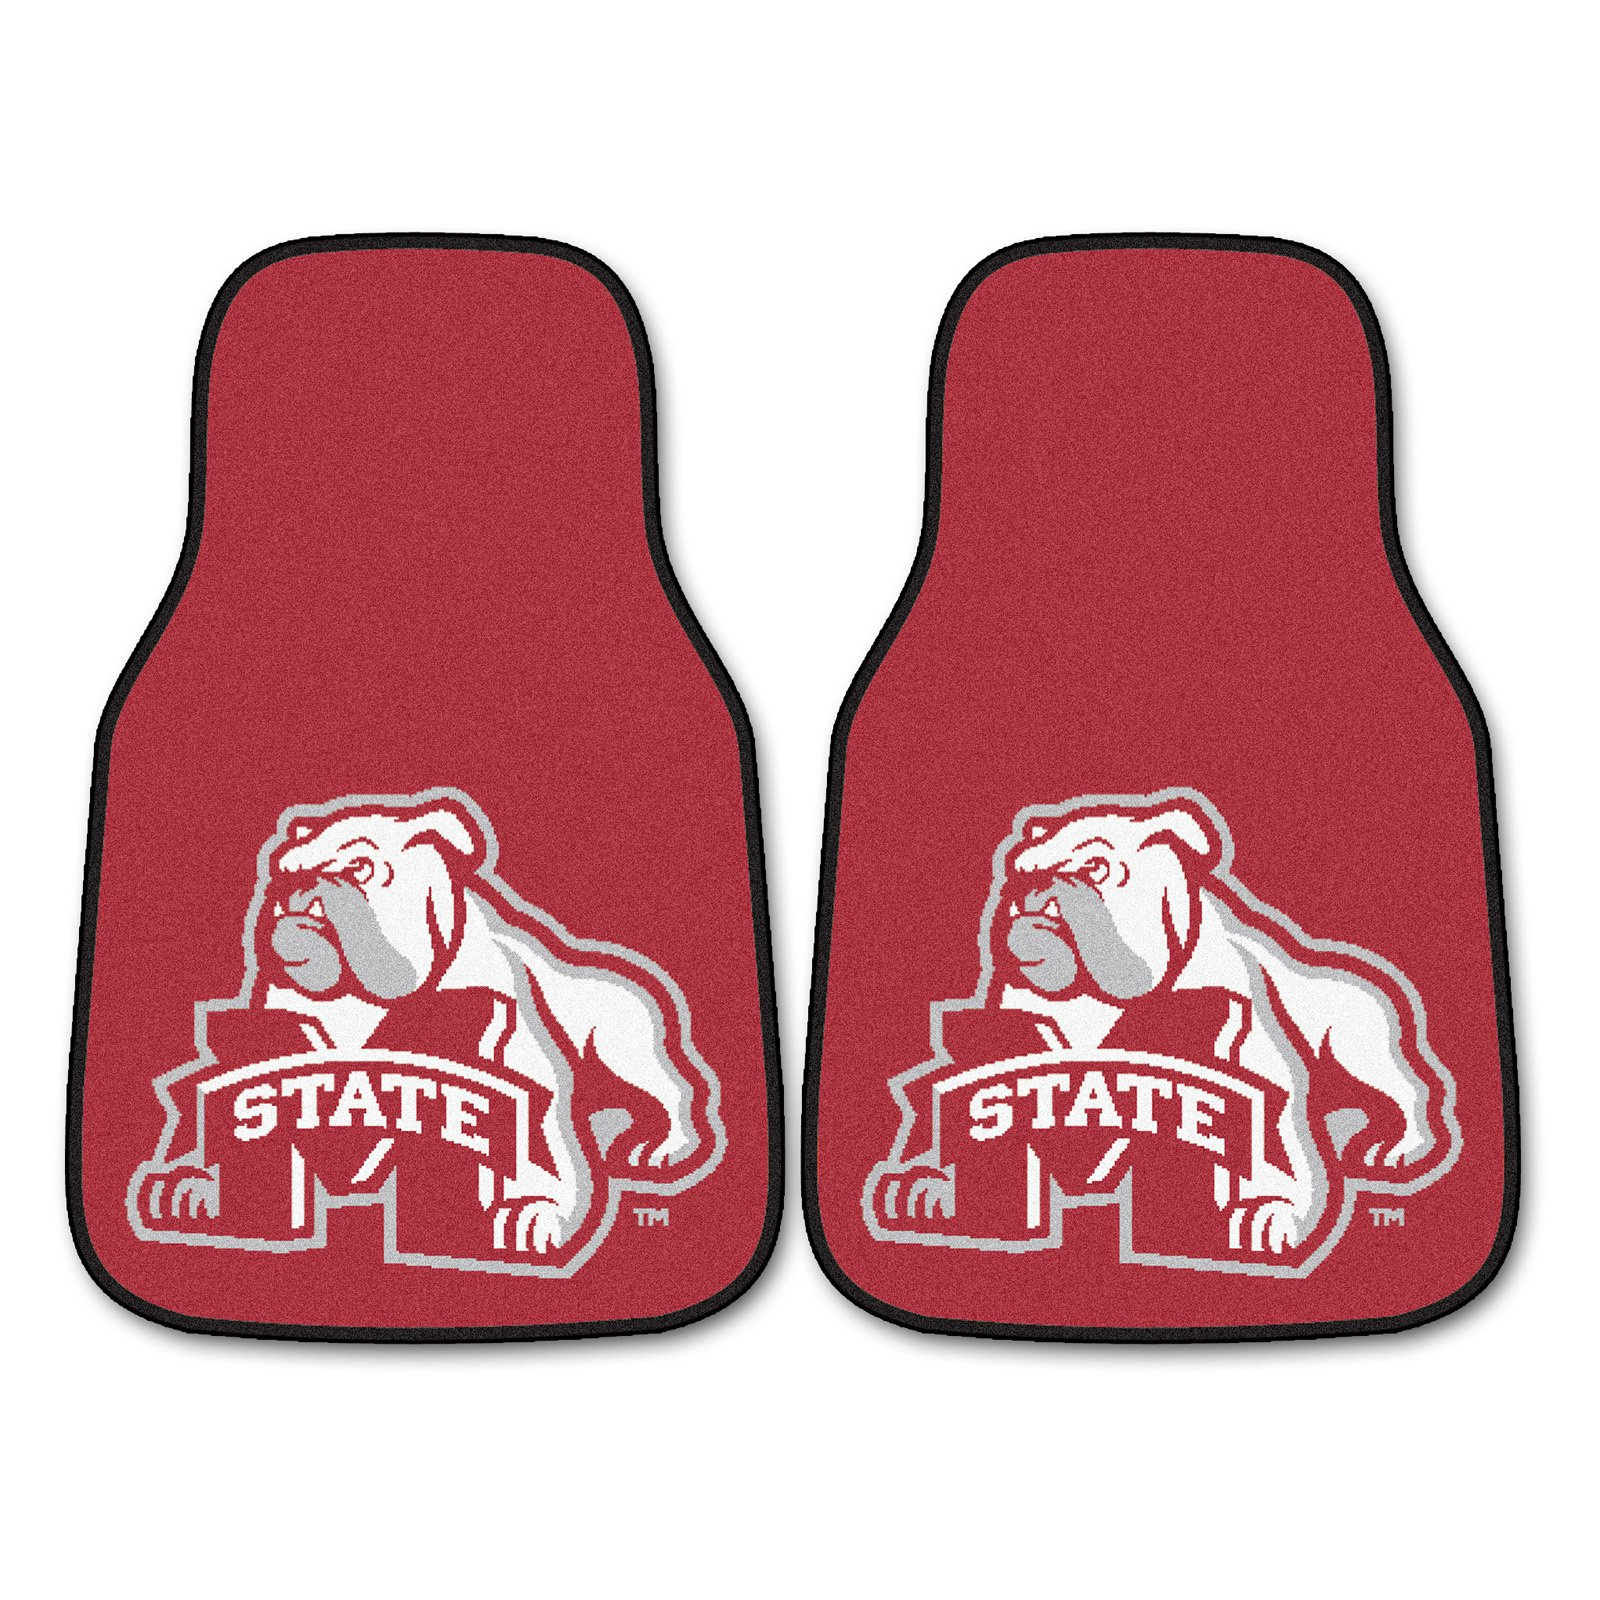 Fanmats Collegiate 18 x 27 in. Carpeted Car Mat